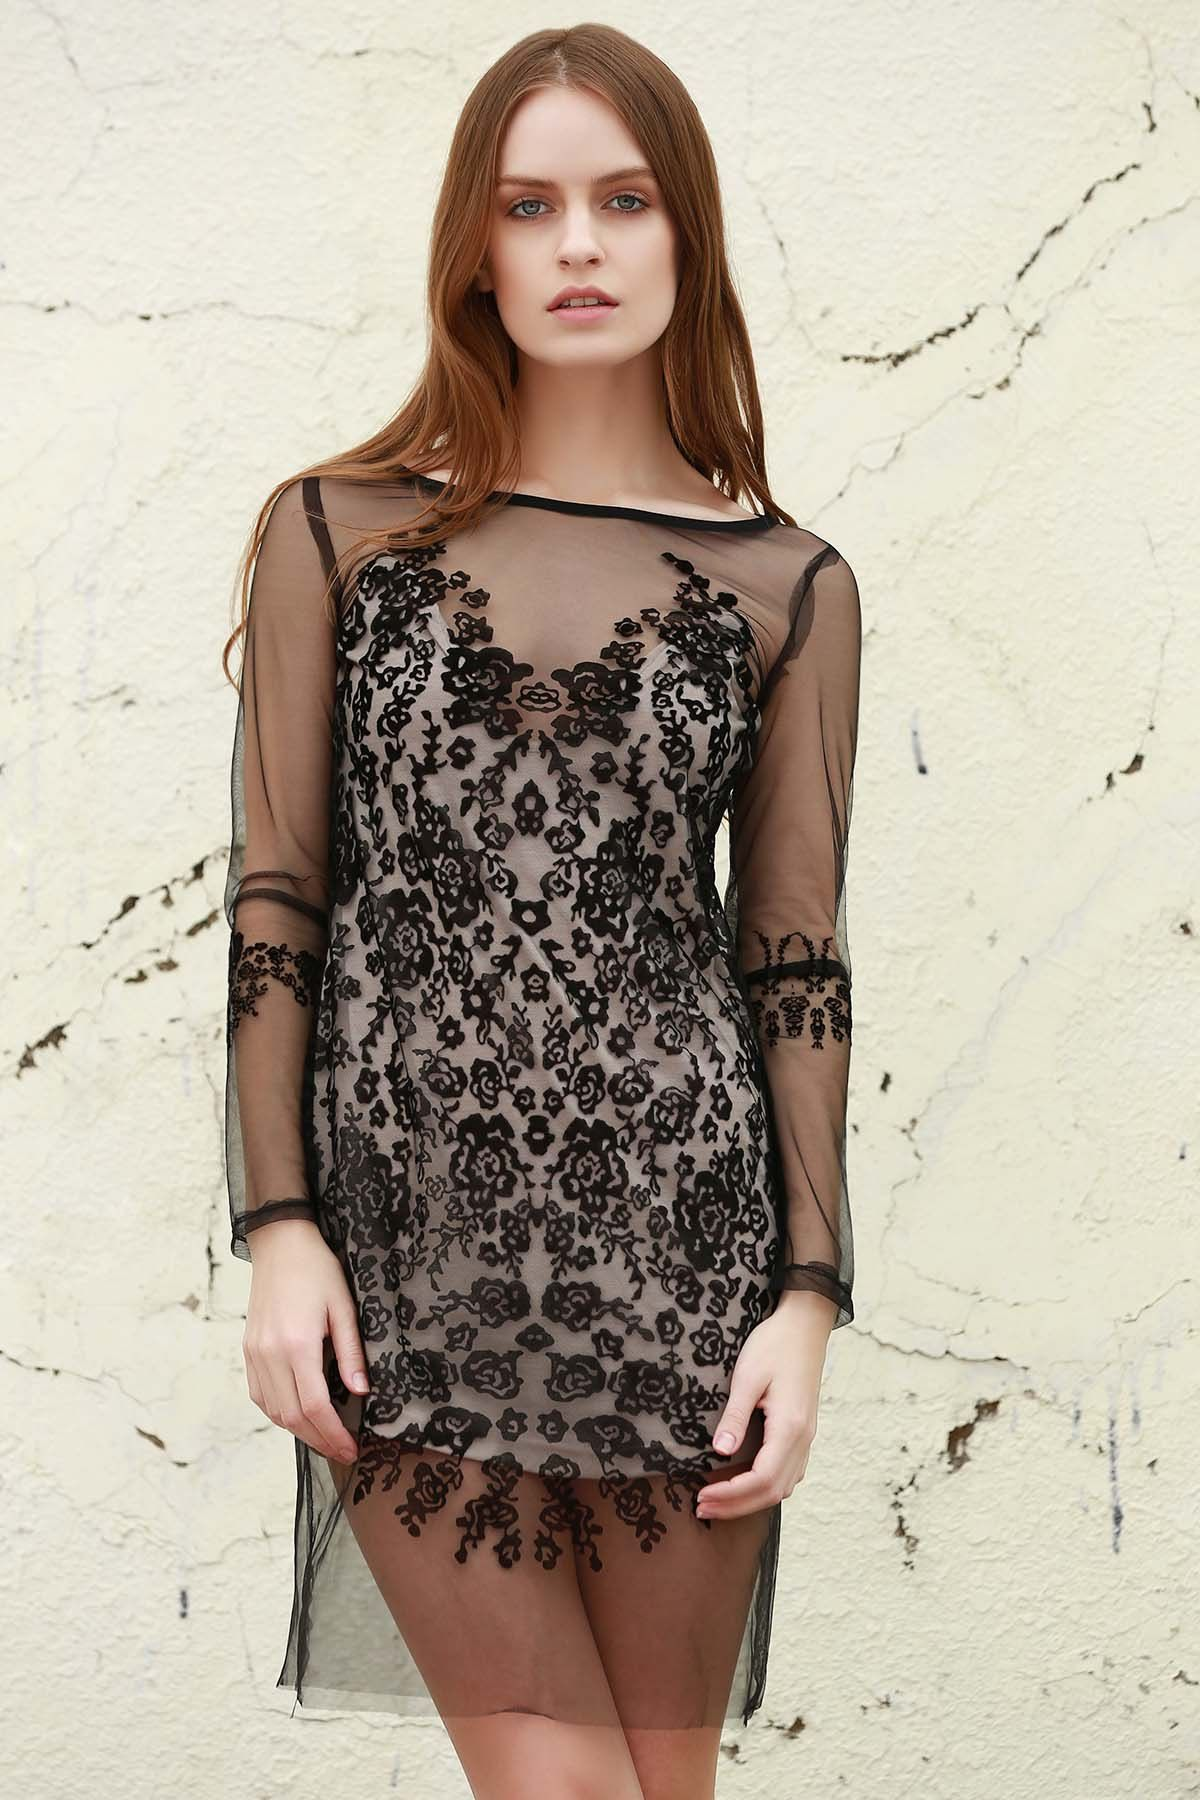 See Through Mesh Patterned Lace Dress Lace Dress Lace White Dress Lace Dress Black